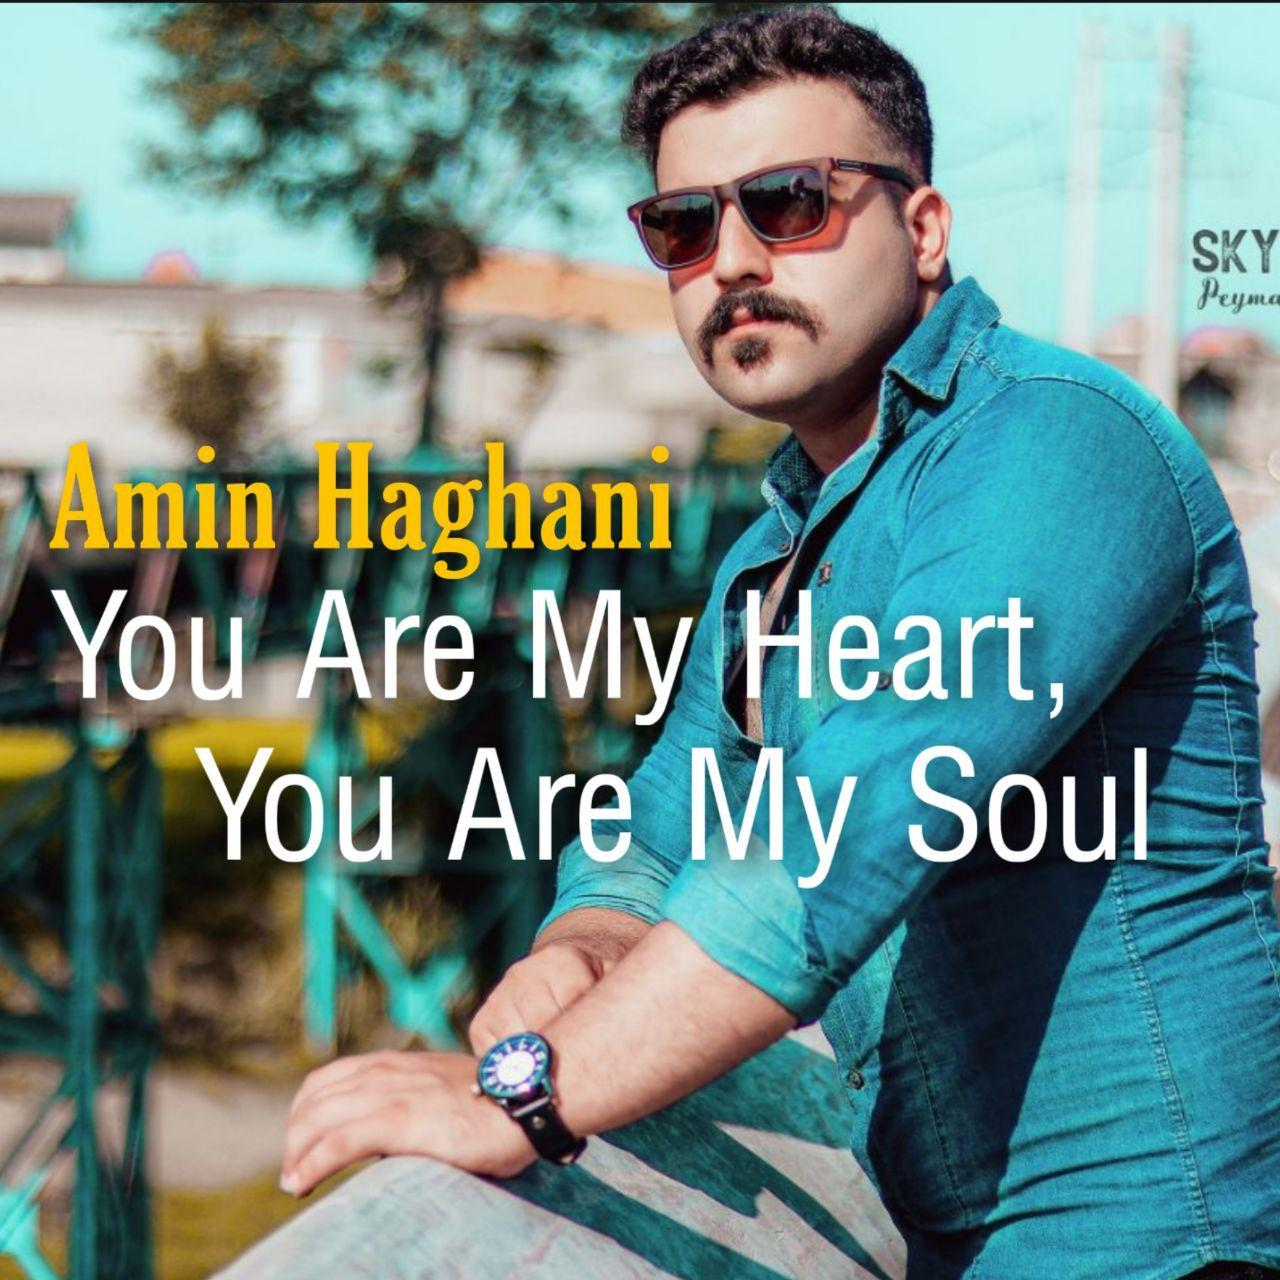 Amin Haghani – You Are My Heart, You Are My Soul